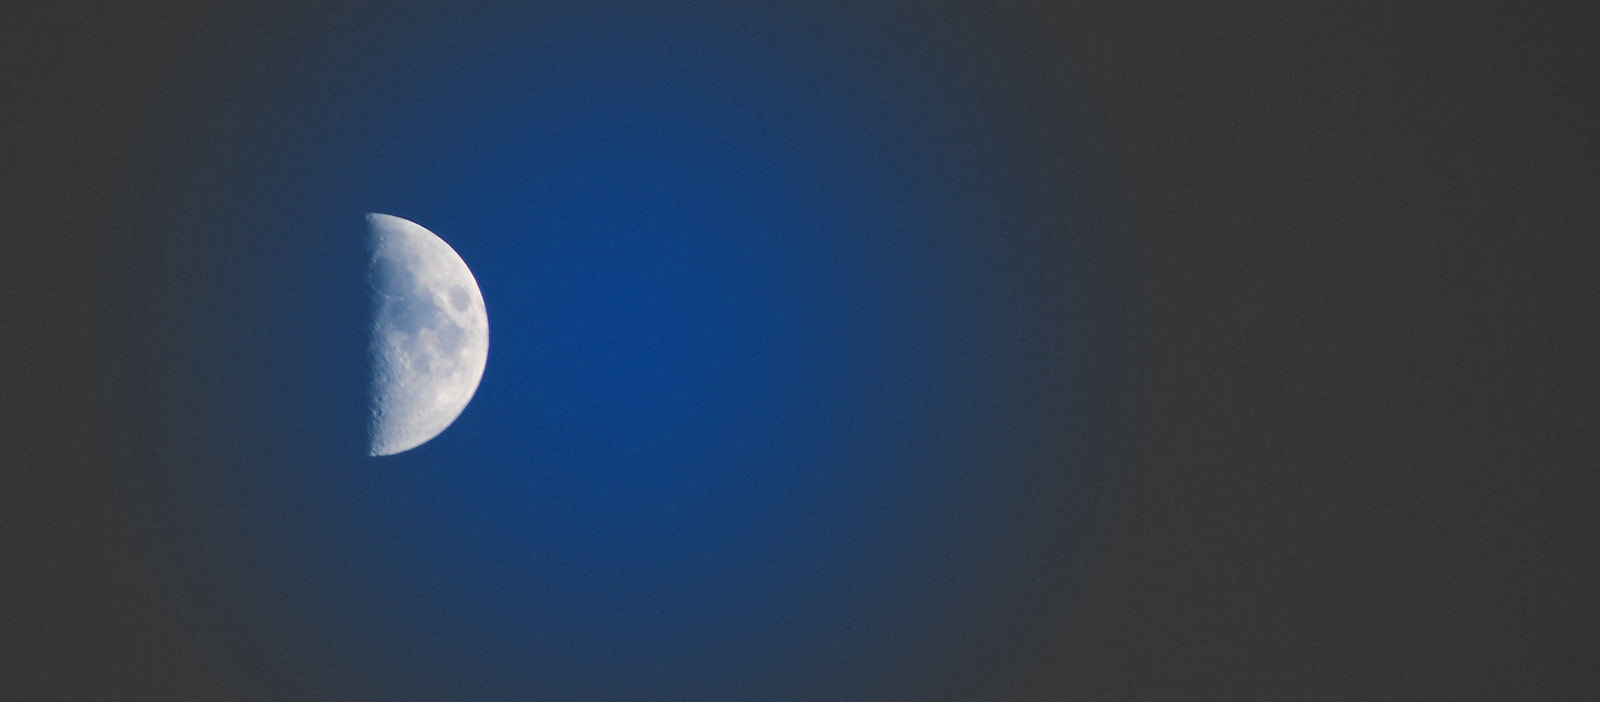 Photograph Moon shine. by Andrew Stein on 500px